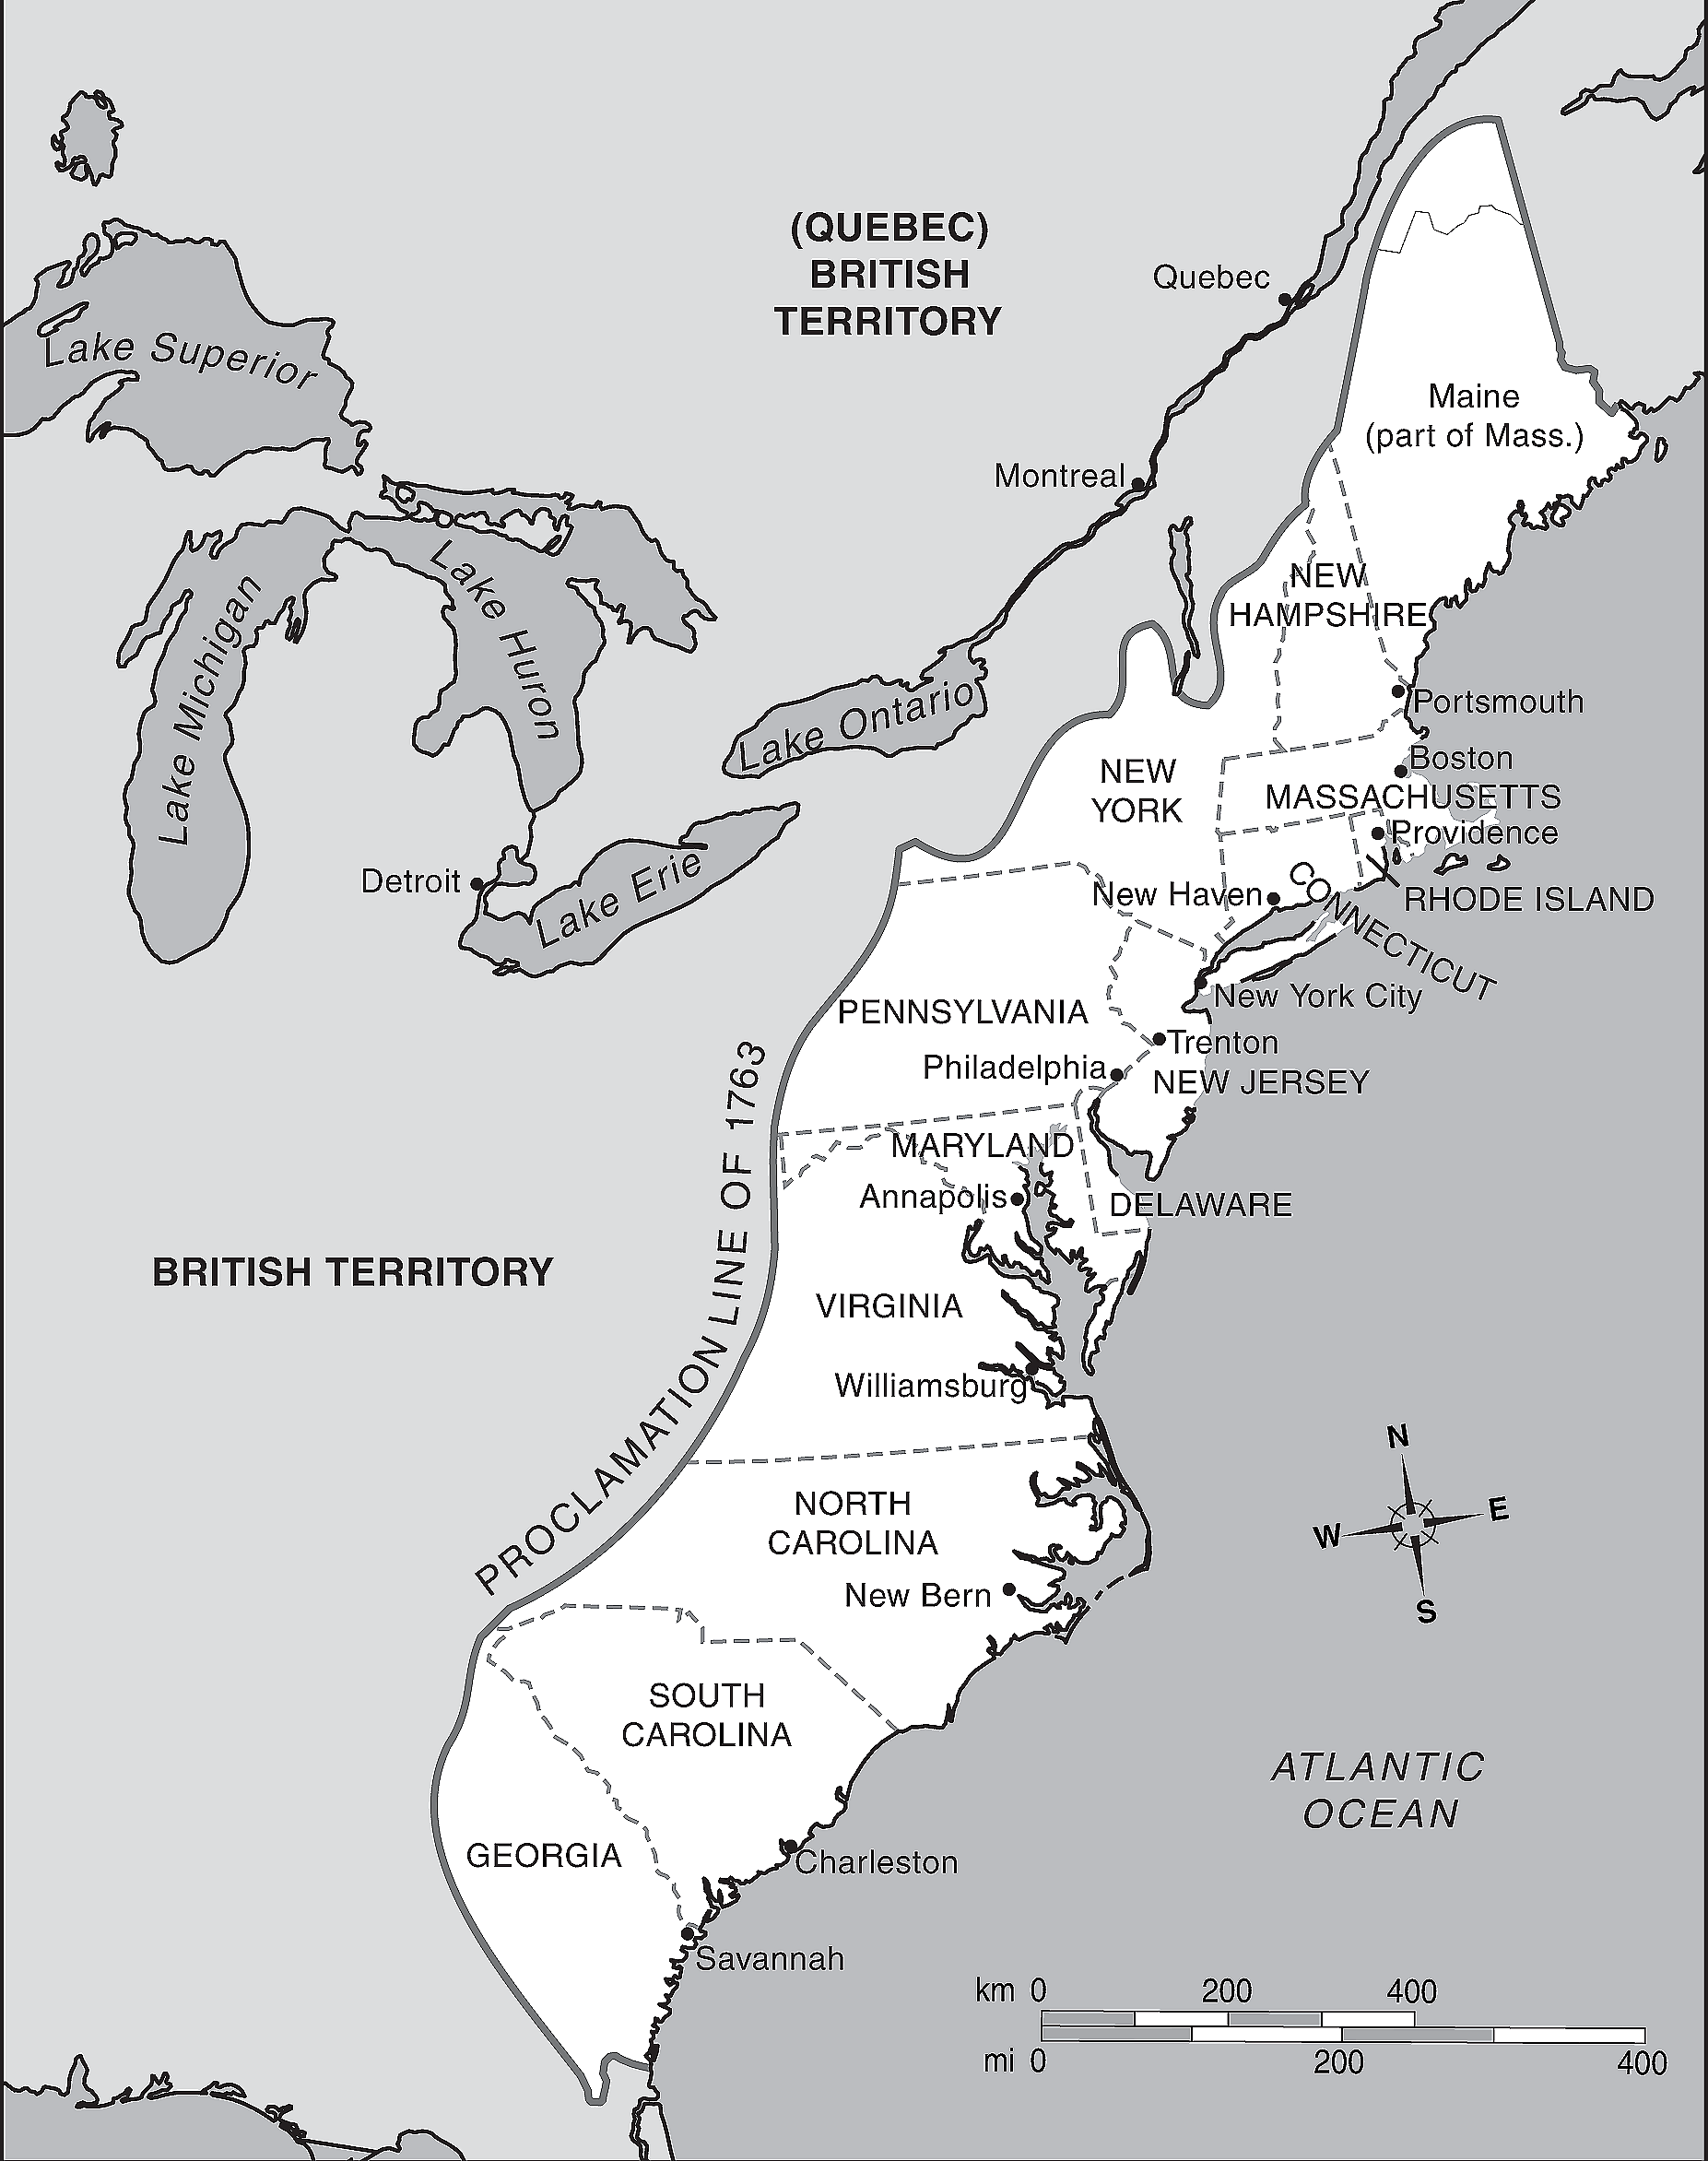 The Original 13 Colonies Map